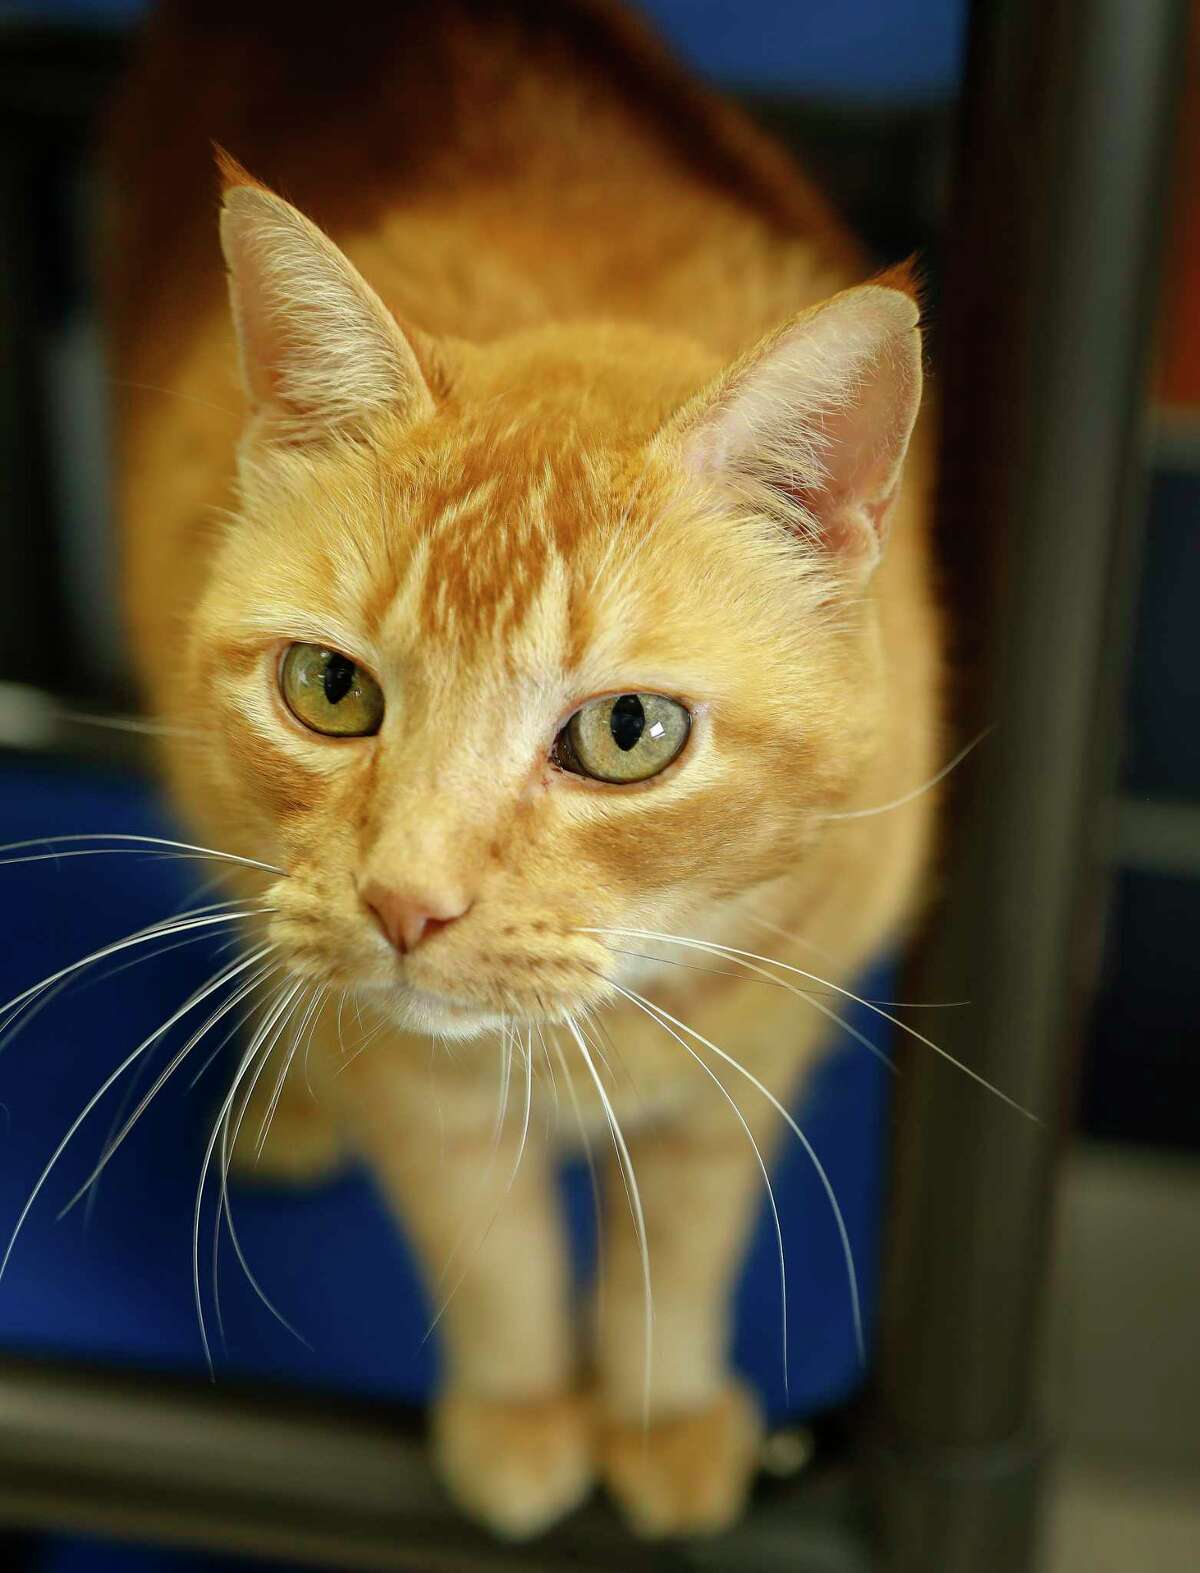 Lion (04717992) is a 11-year-old, male, Orange Tabby Domestic Shorthair cat available for adoption from the Houston Humane Society. Photographed, Tuesday, Jan. 14, 2020, in Houston. Lion was adopted from the HHS 11 years ago as a tiny kitten. He was recently returned to the shelter because a member of his human family developed allergies. He is a solidly sweet boy who loves human interaction. He purrs loudly and would like to find a suitable home to live out his senior years.